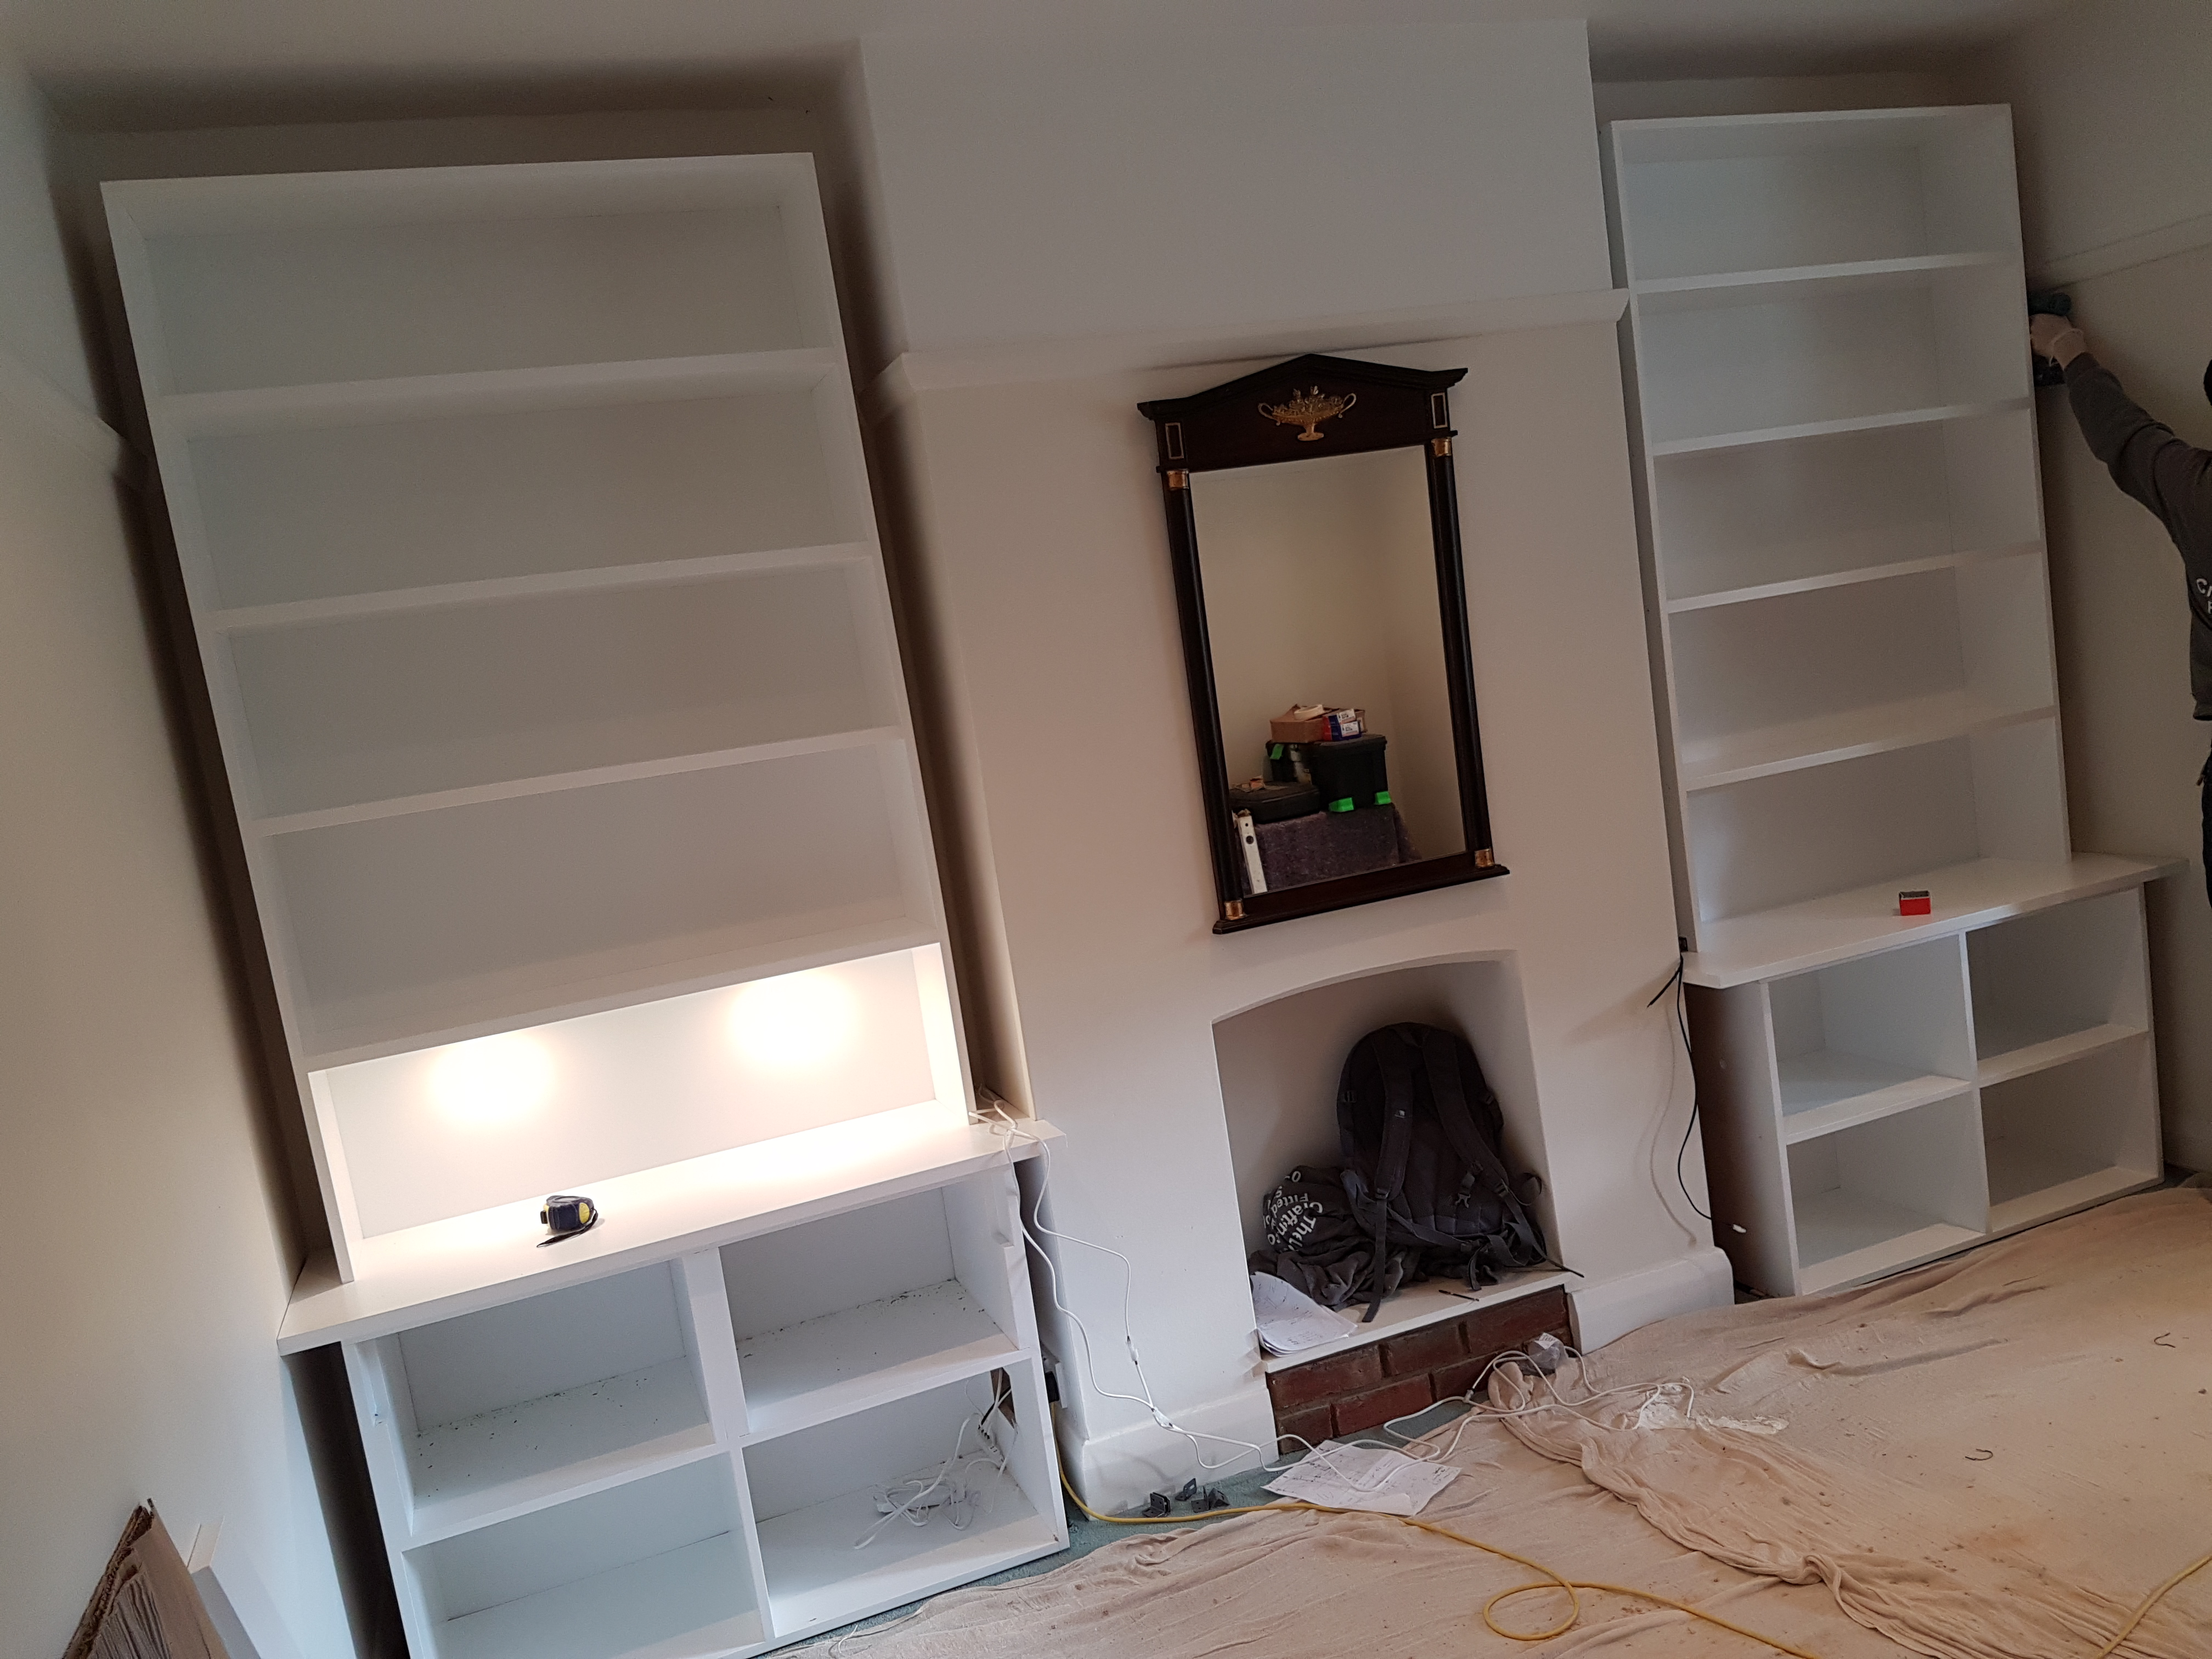 SPRAY FINISHED ALCOVE CABINETS 6